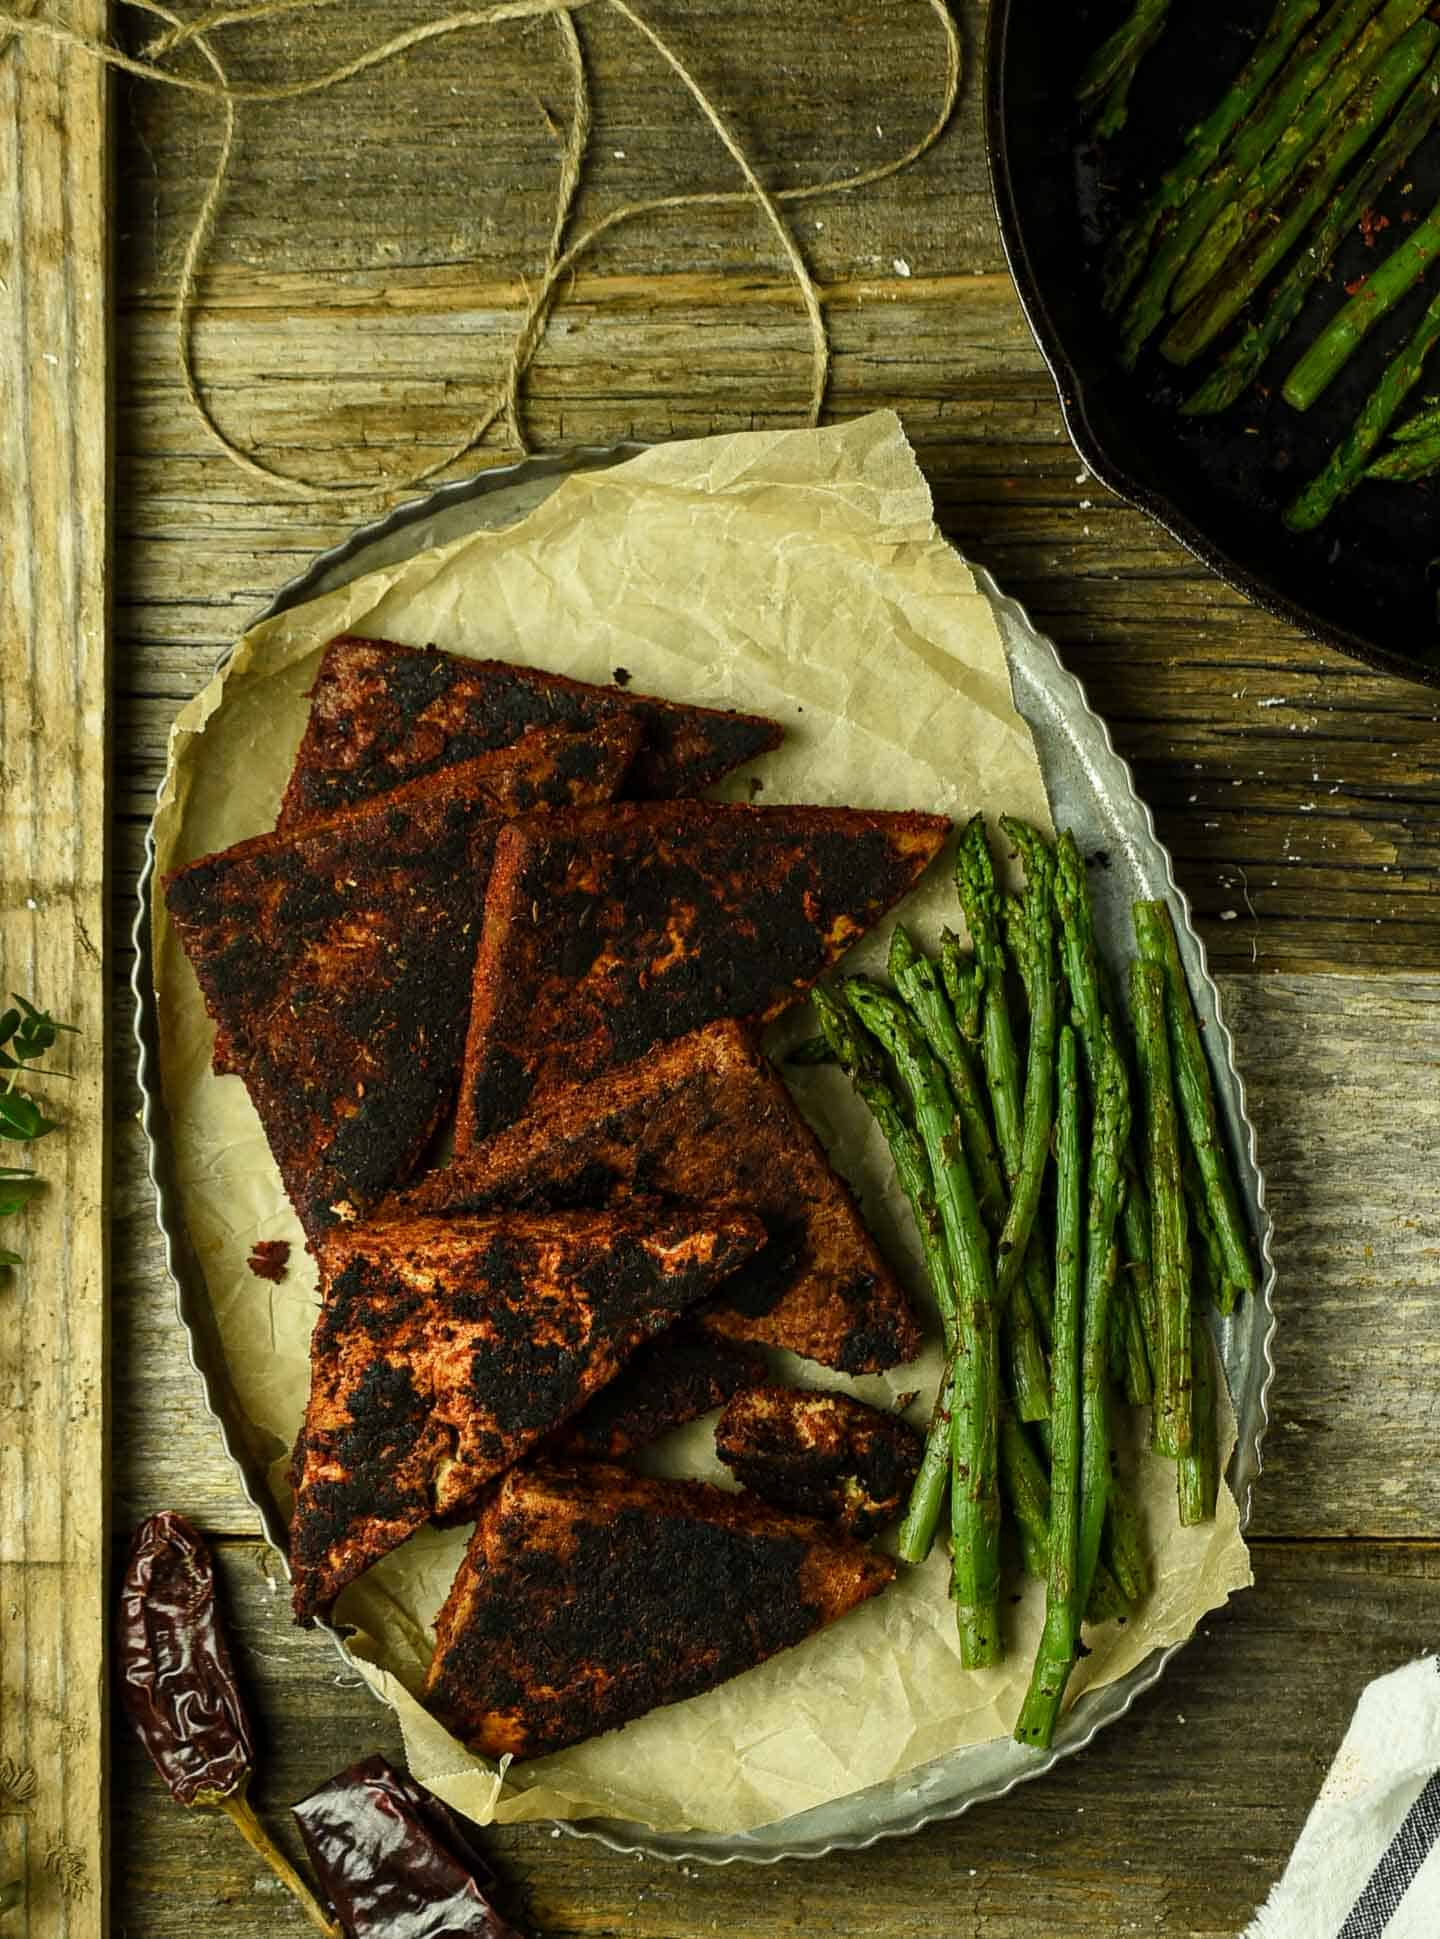 Blackened tofu steaks on tray with asparagus.